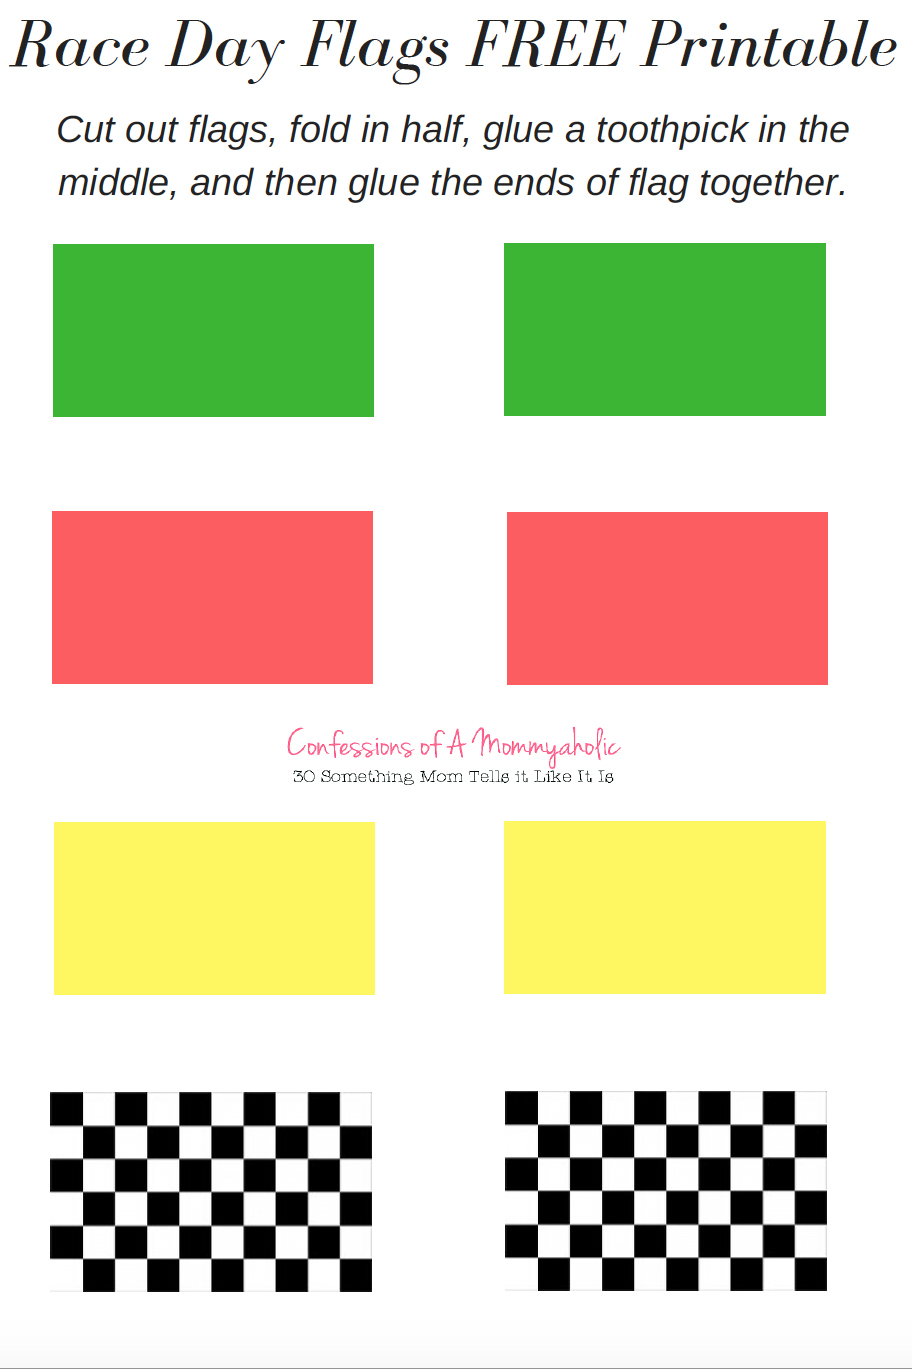 Race Day Printables Flags